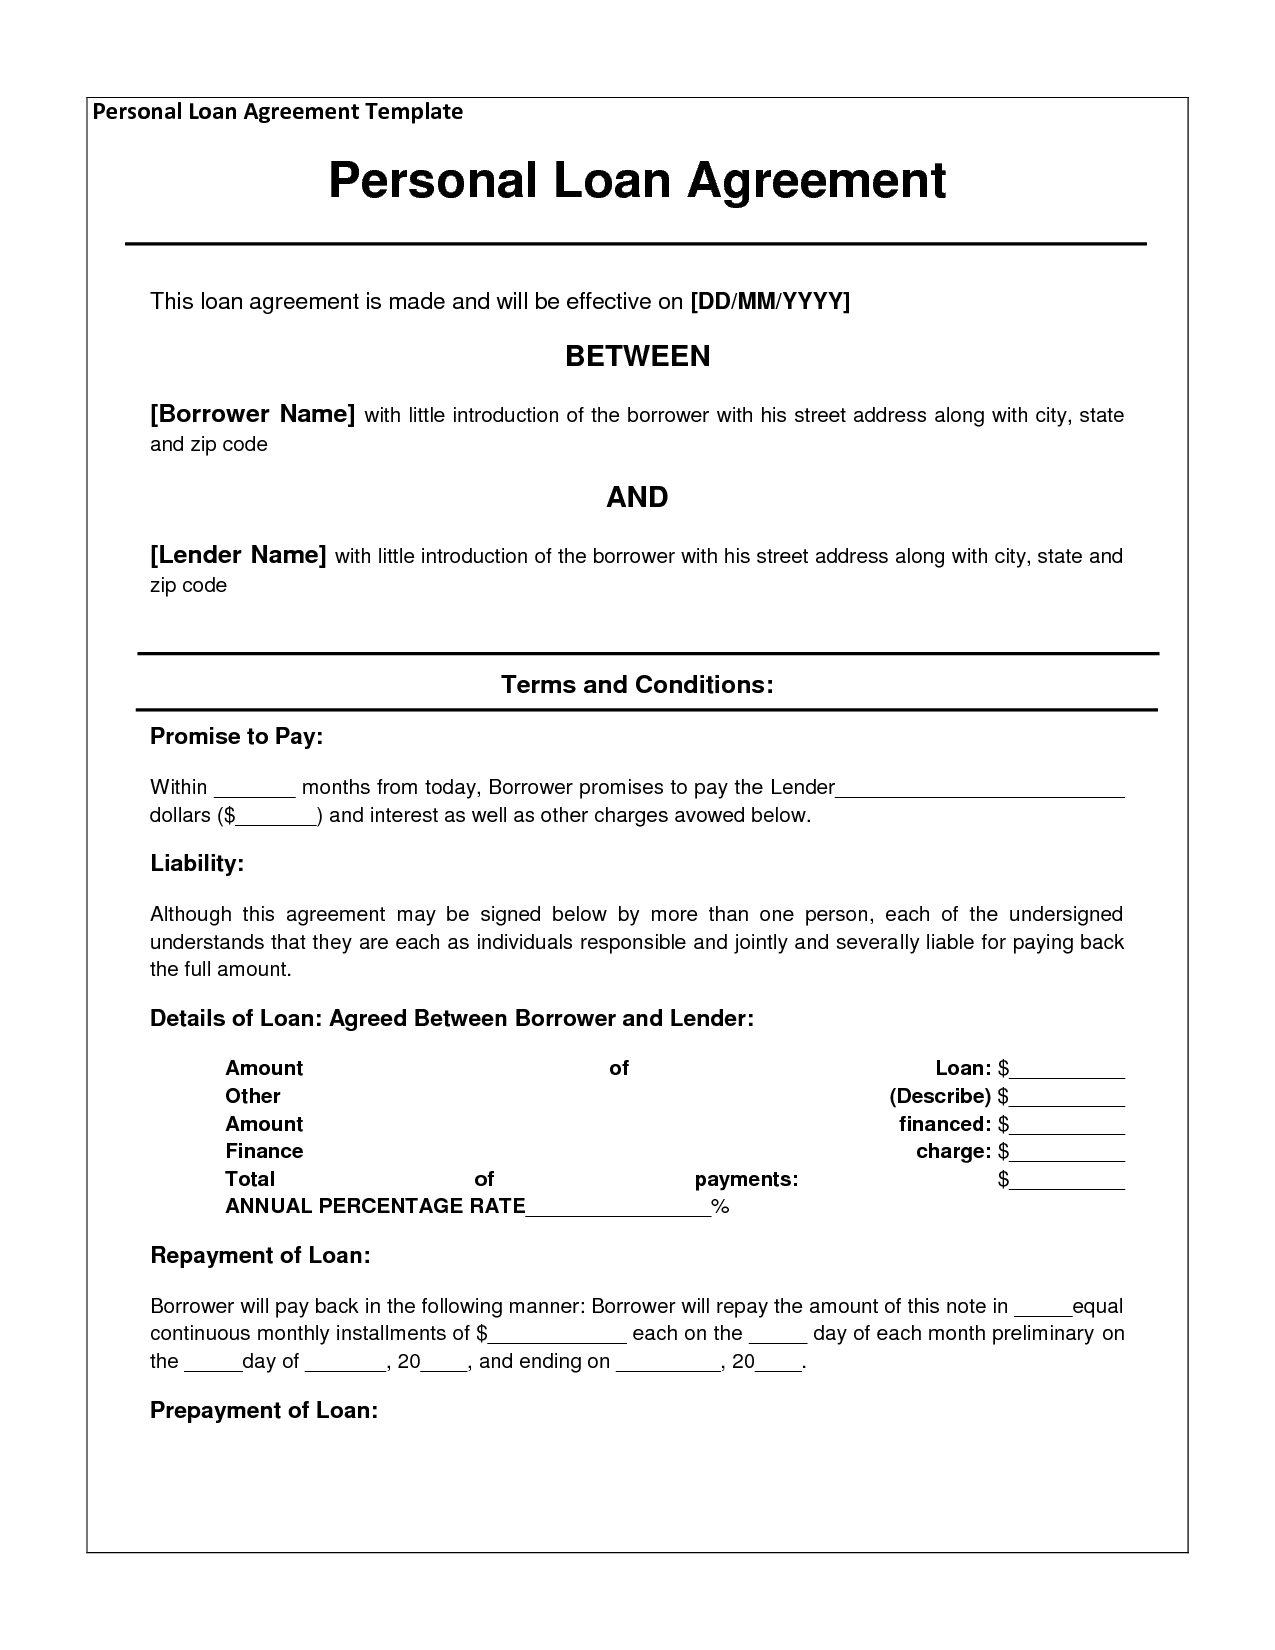 Download personal loan agreement form for free try various formats download personal loan agreement form for free try various formats of personal loan agreement form for pdf word excel friedricerecipe